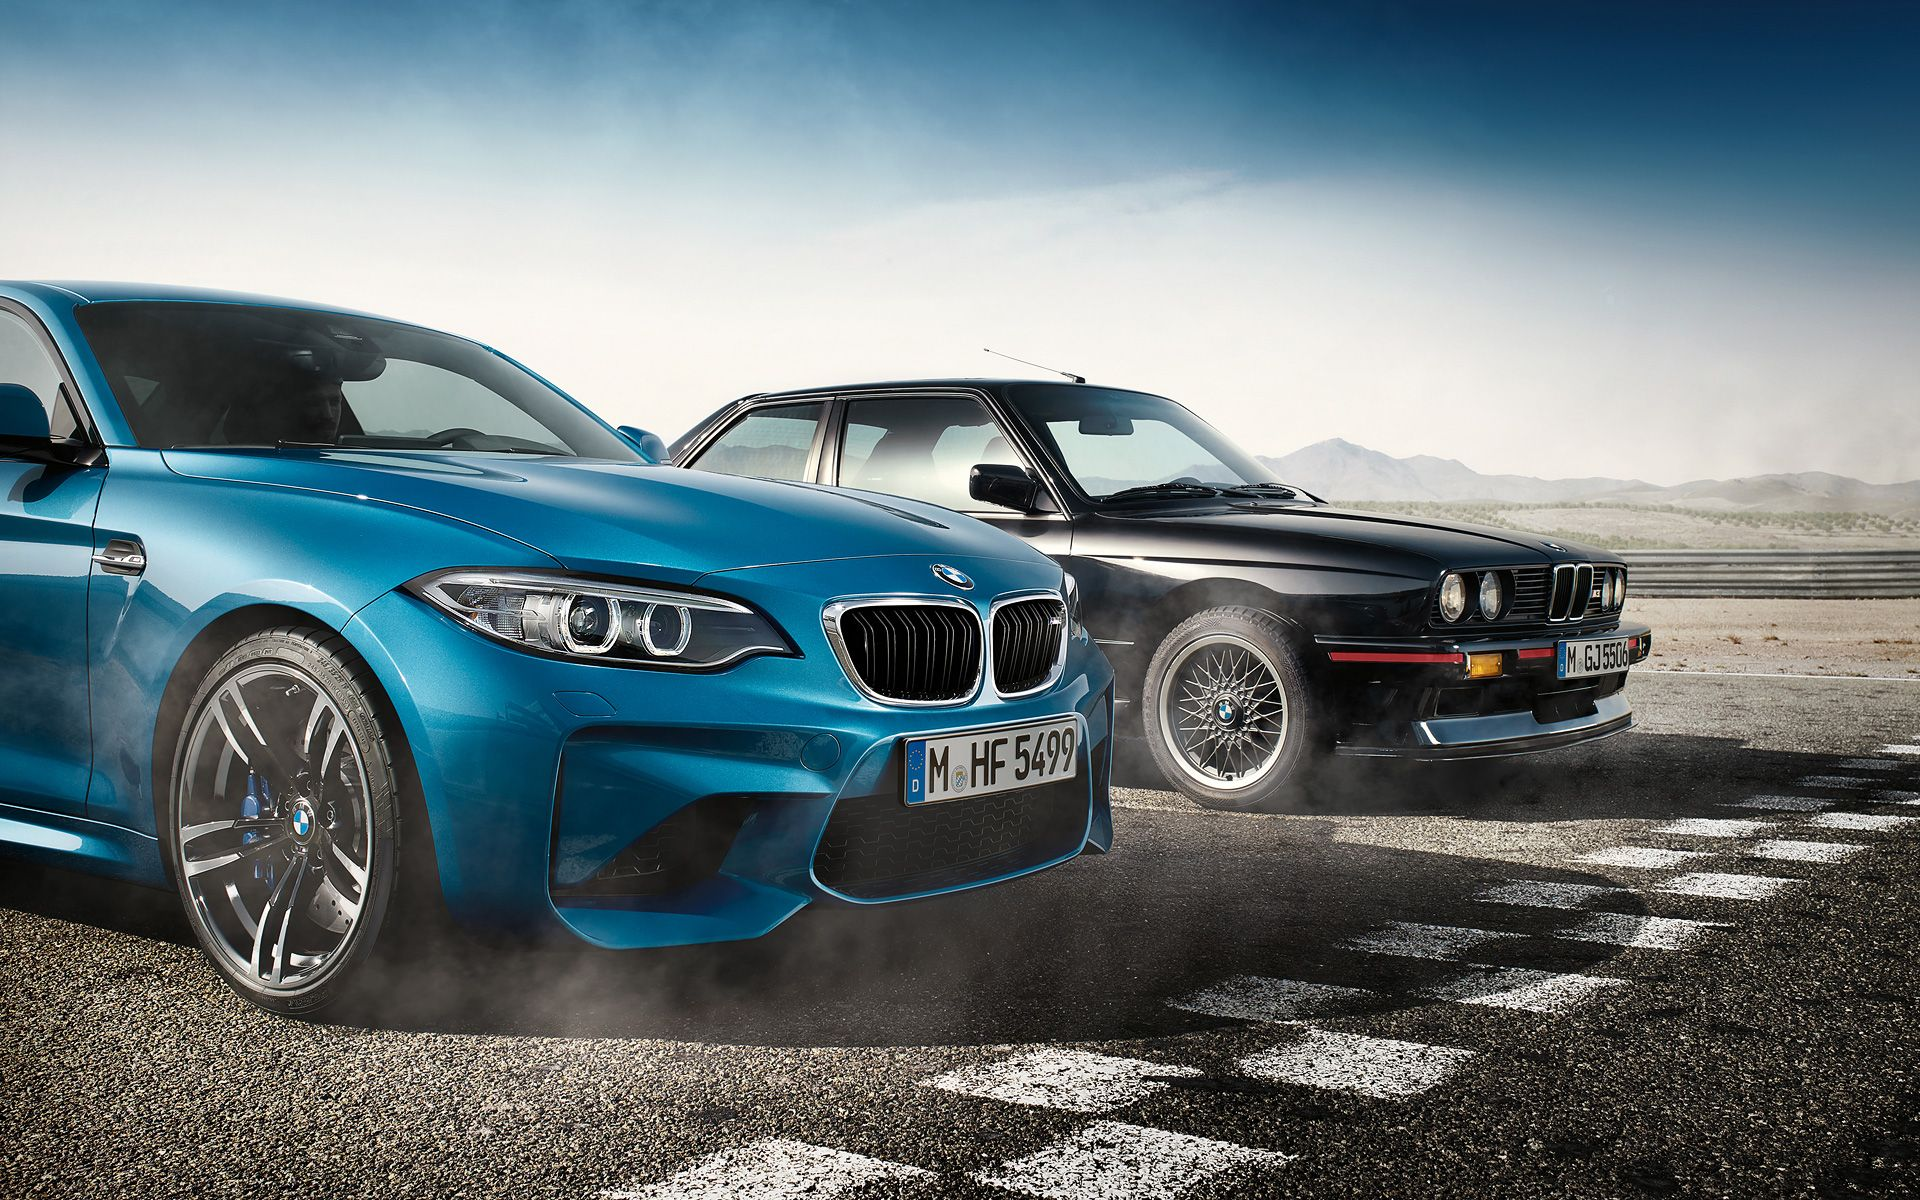 BMW M2 Coupe (F87) Wallpapers, Specifications, Info ...